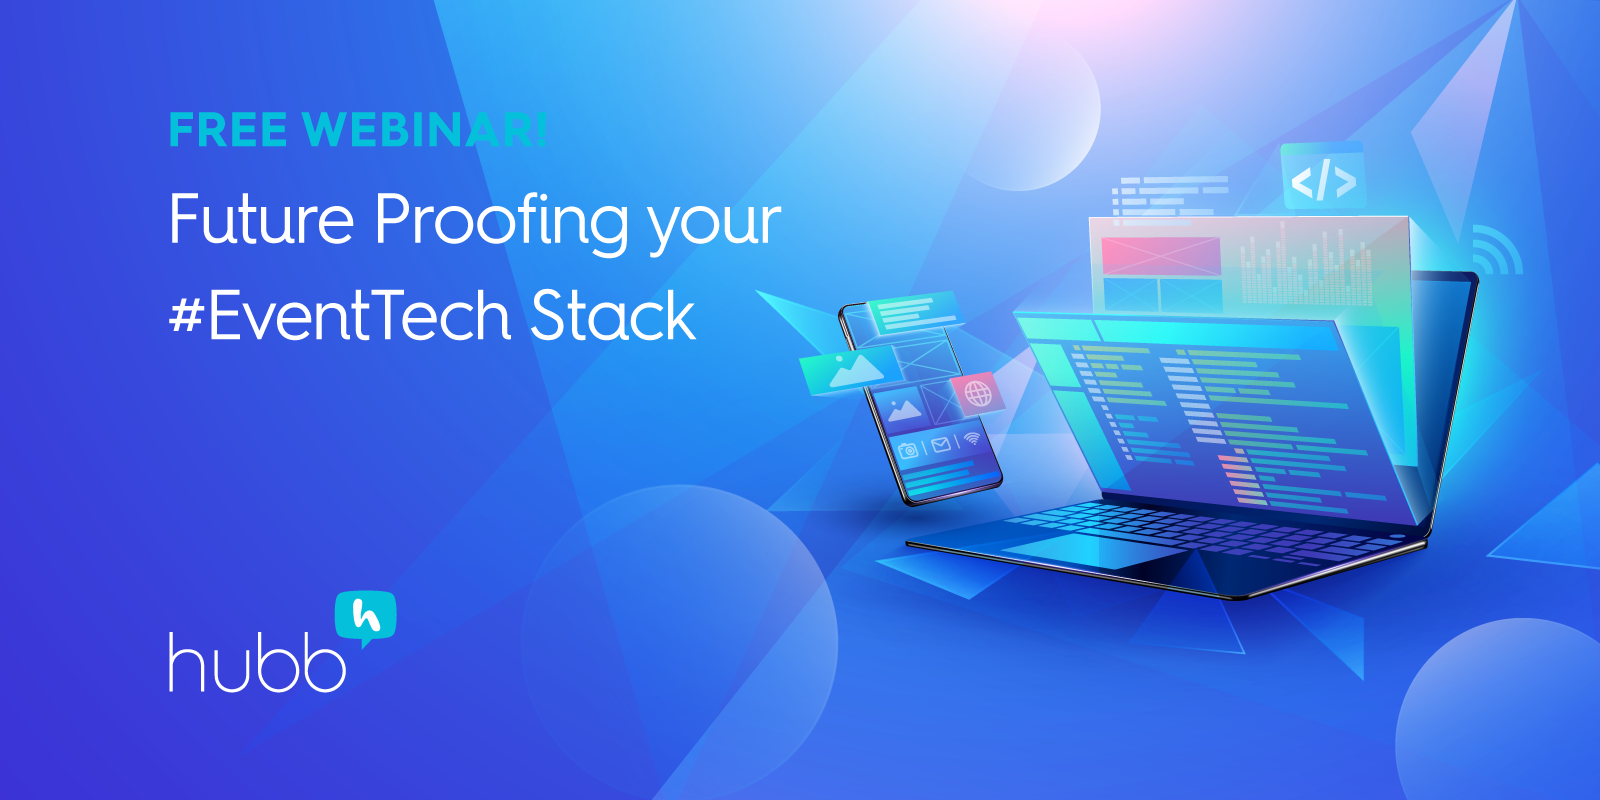 [Webinar] Future-Proofing Your Event Tech Stack